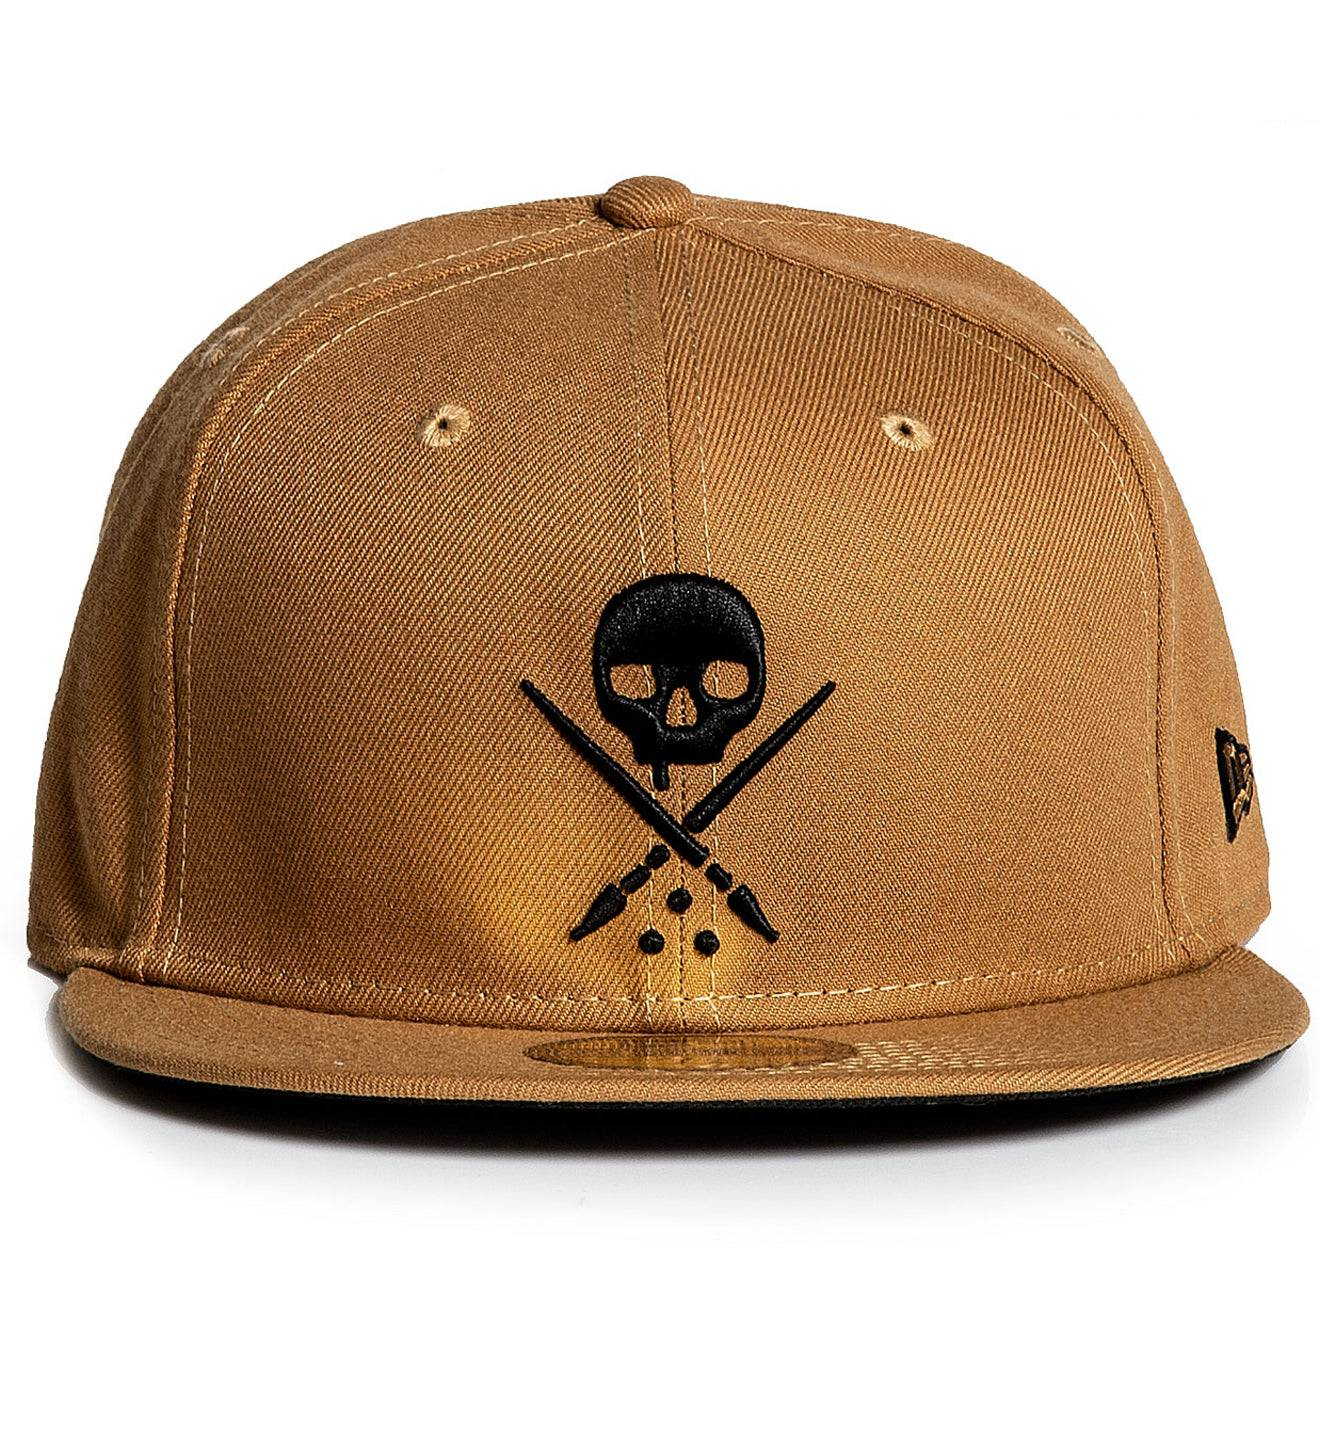 Mens Fitted Badge Wheat, WHEAT / 71/8